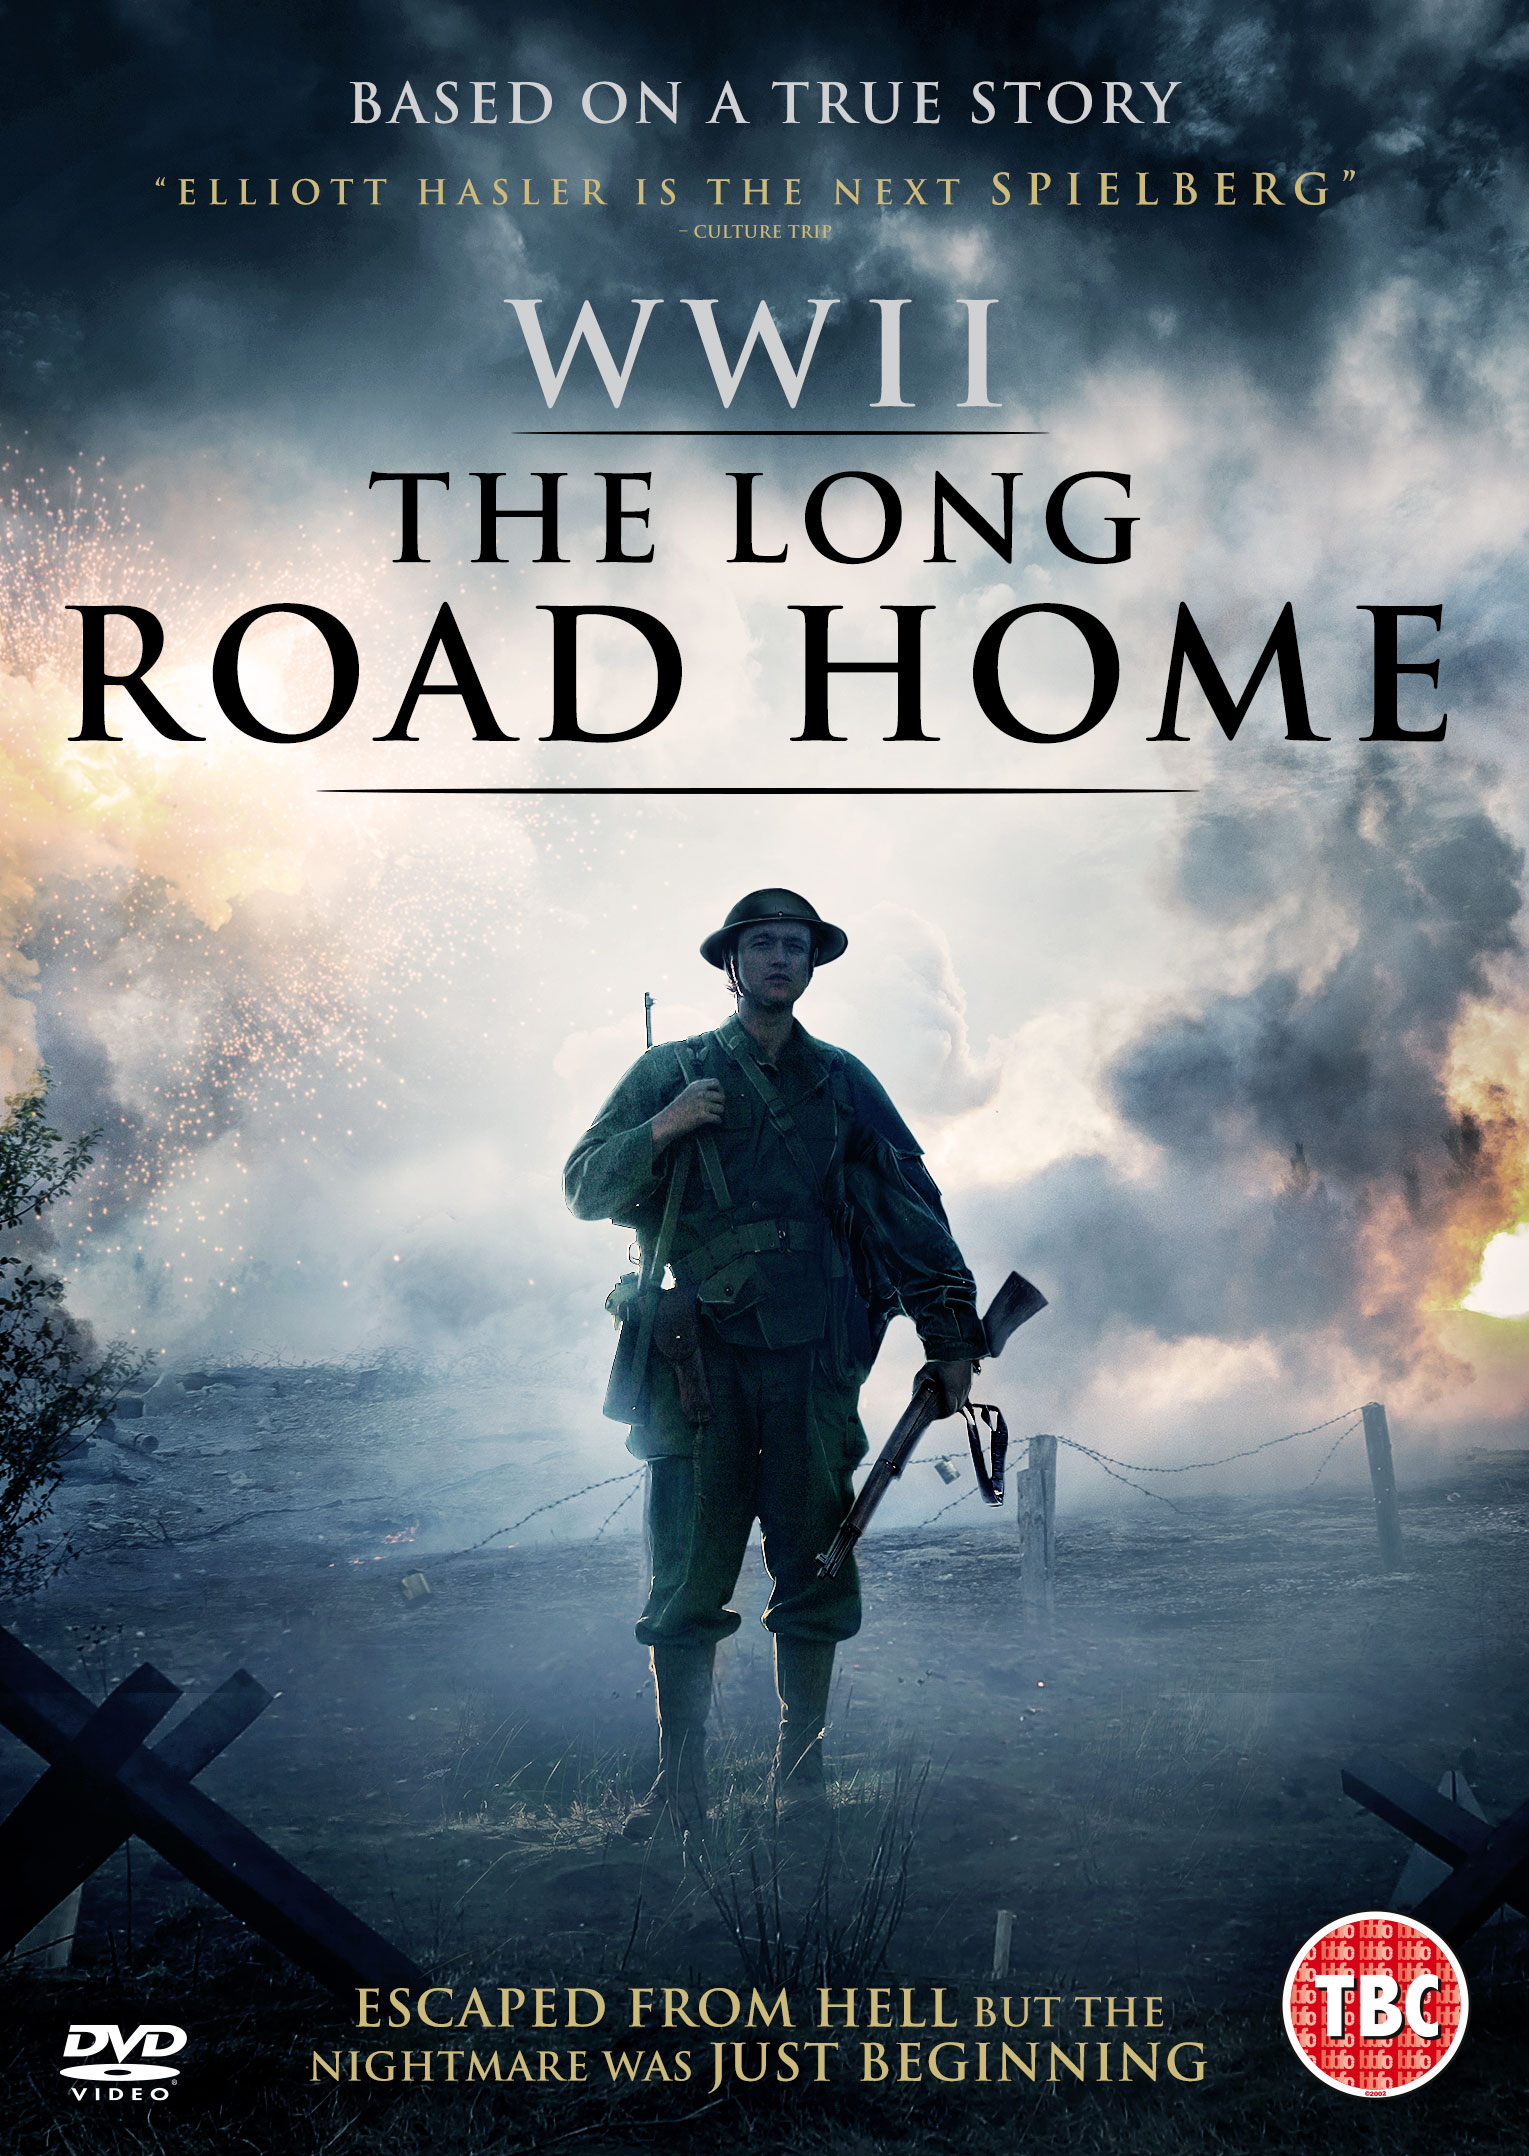 the long road home film poster by Elliott Hasler